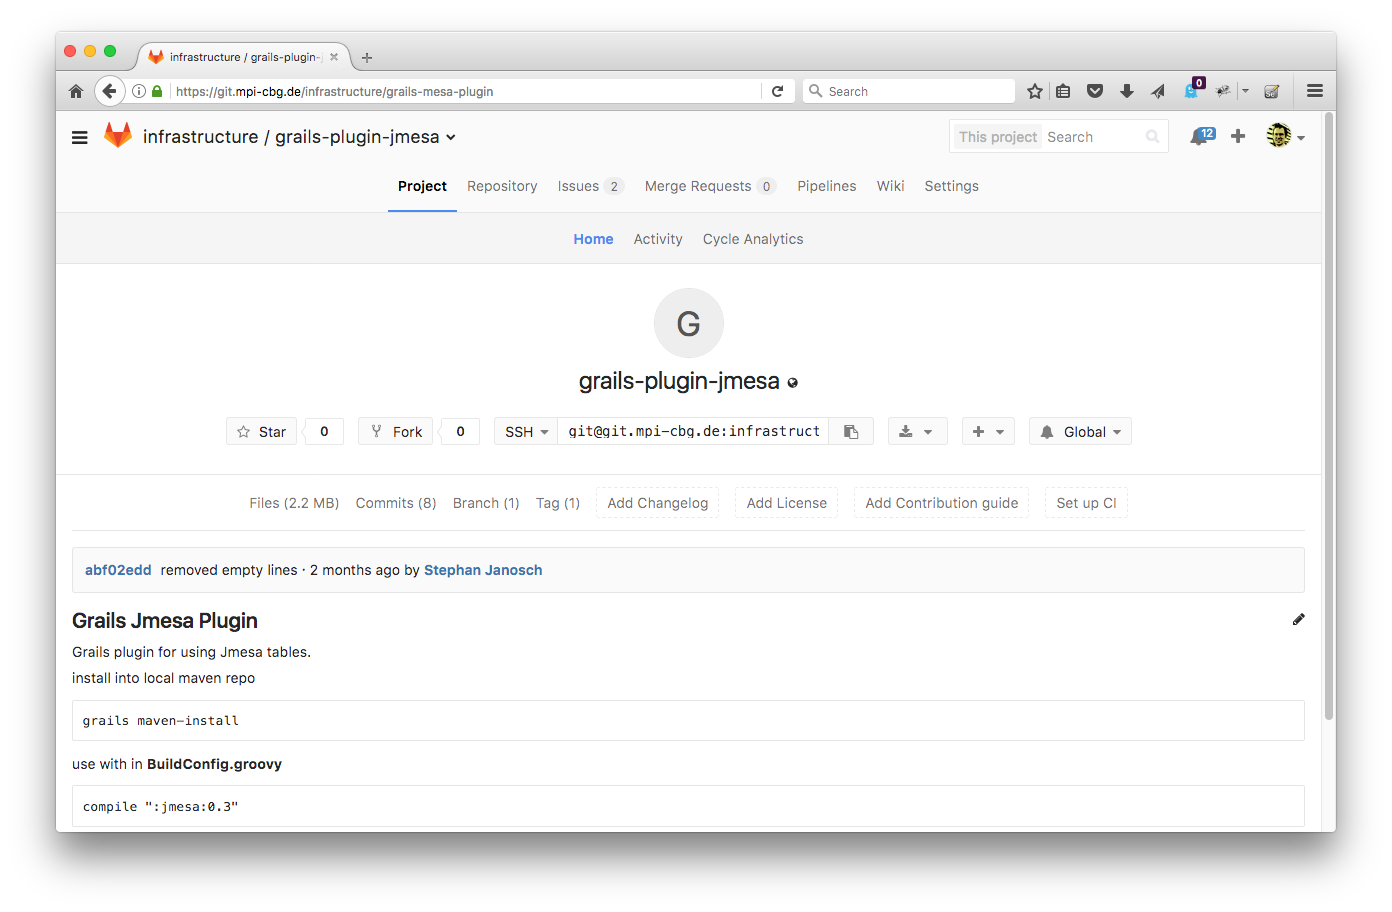 gitlab project page